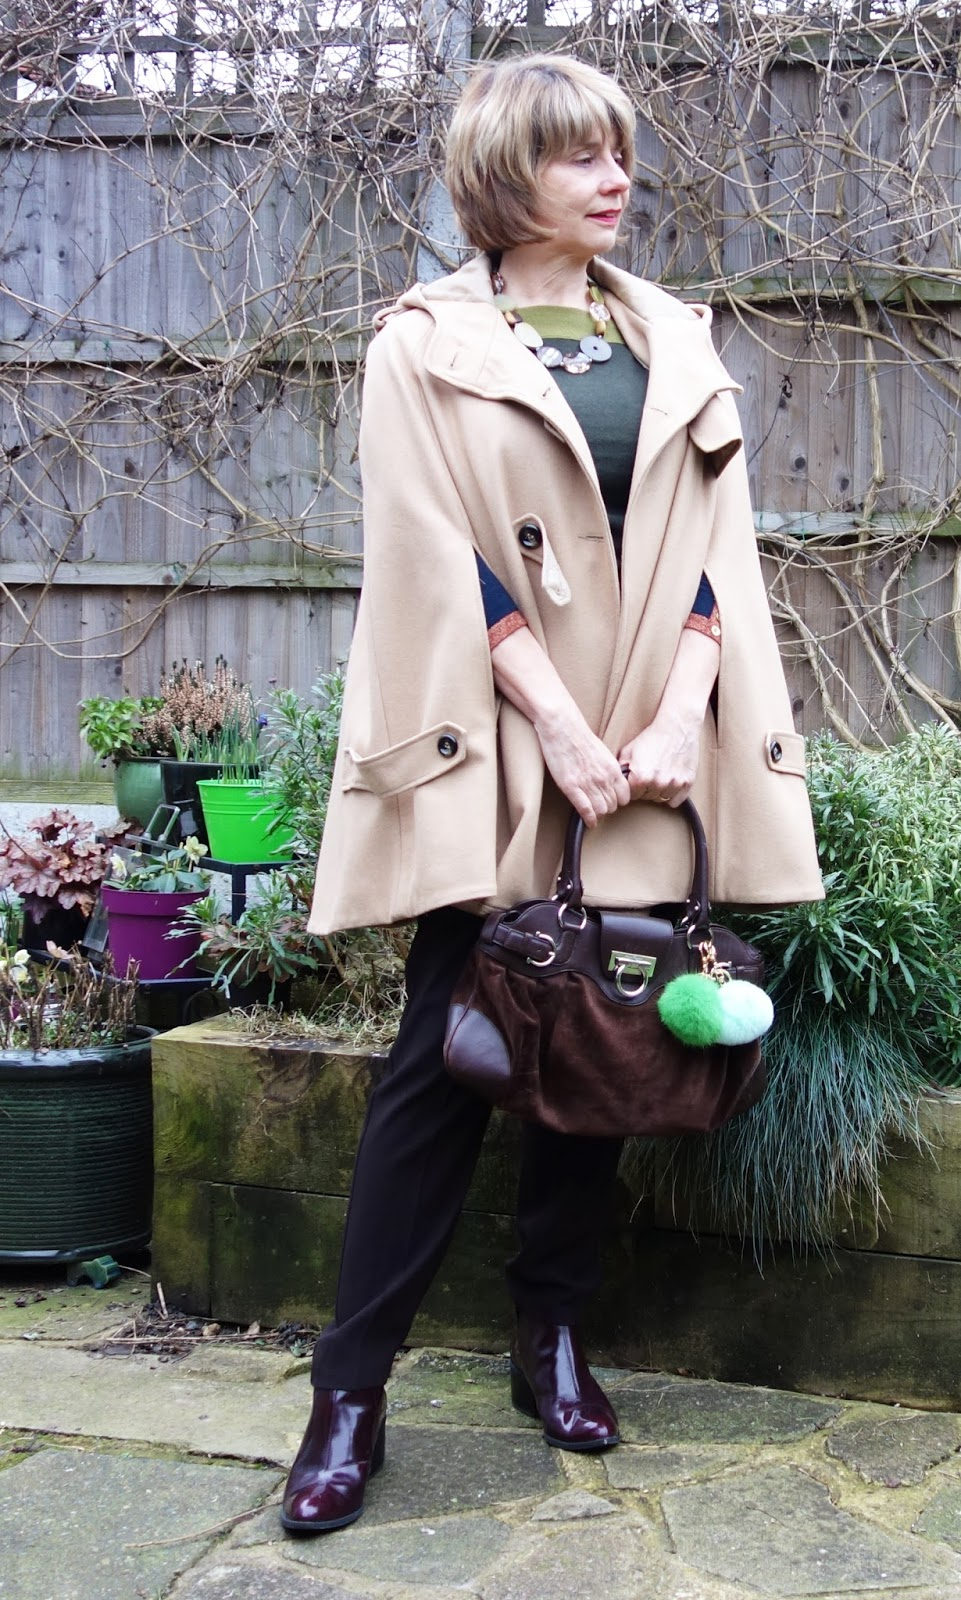 Gail Hanlon blogger wearing brown and green